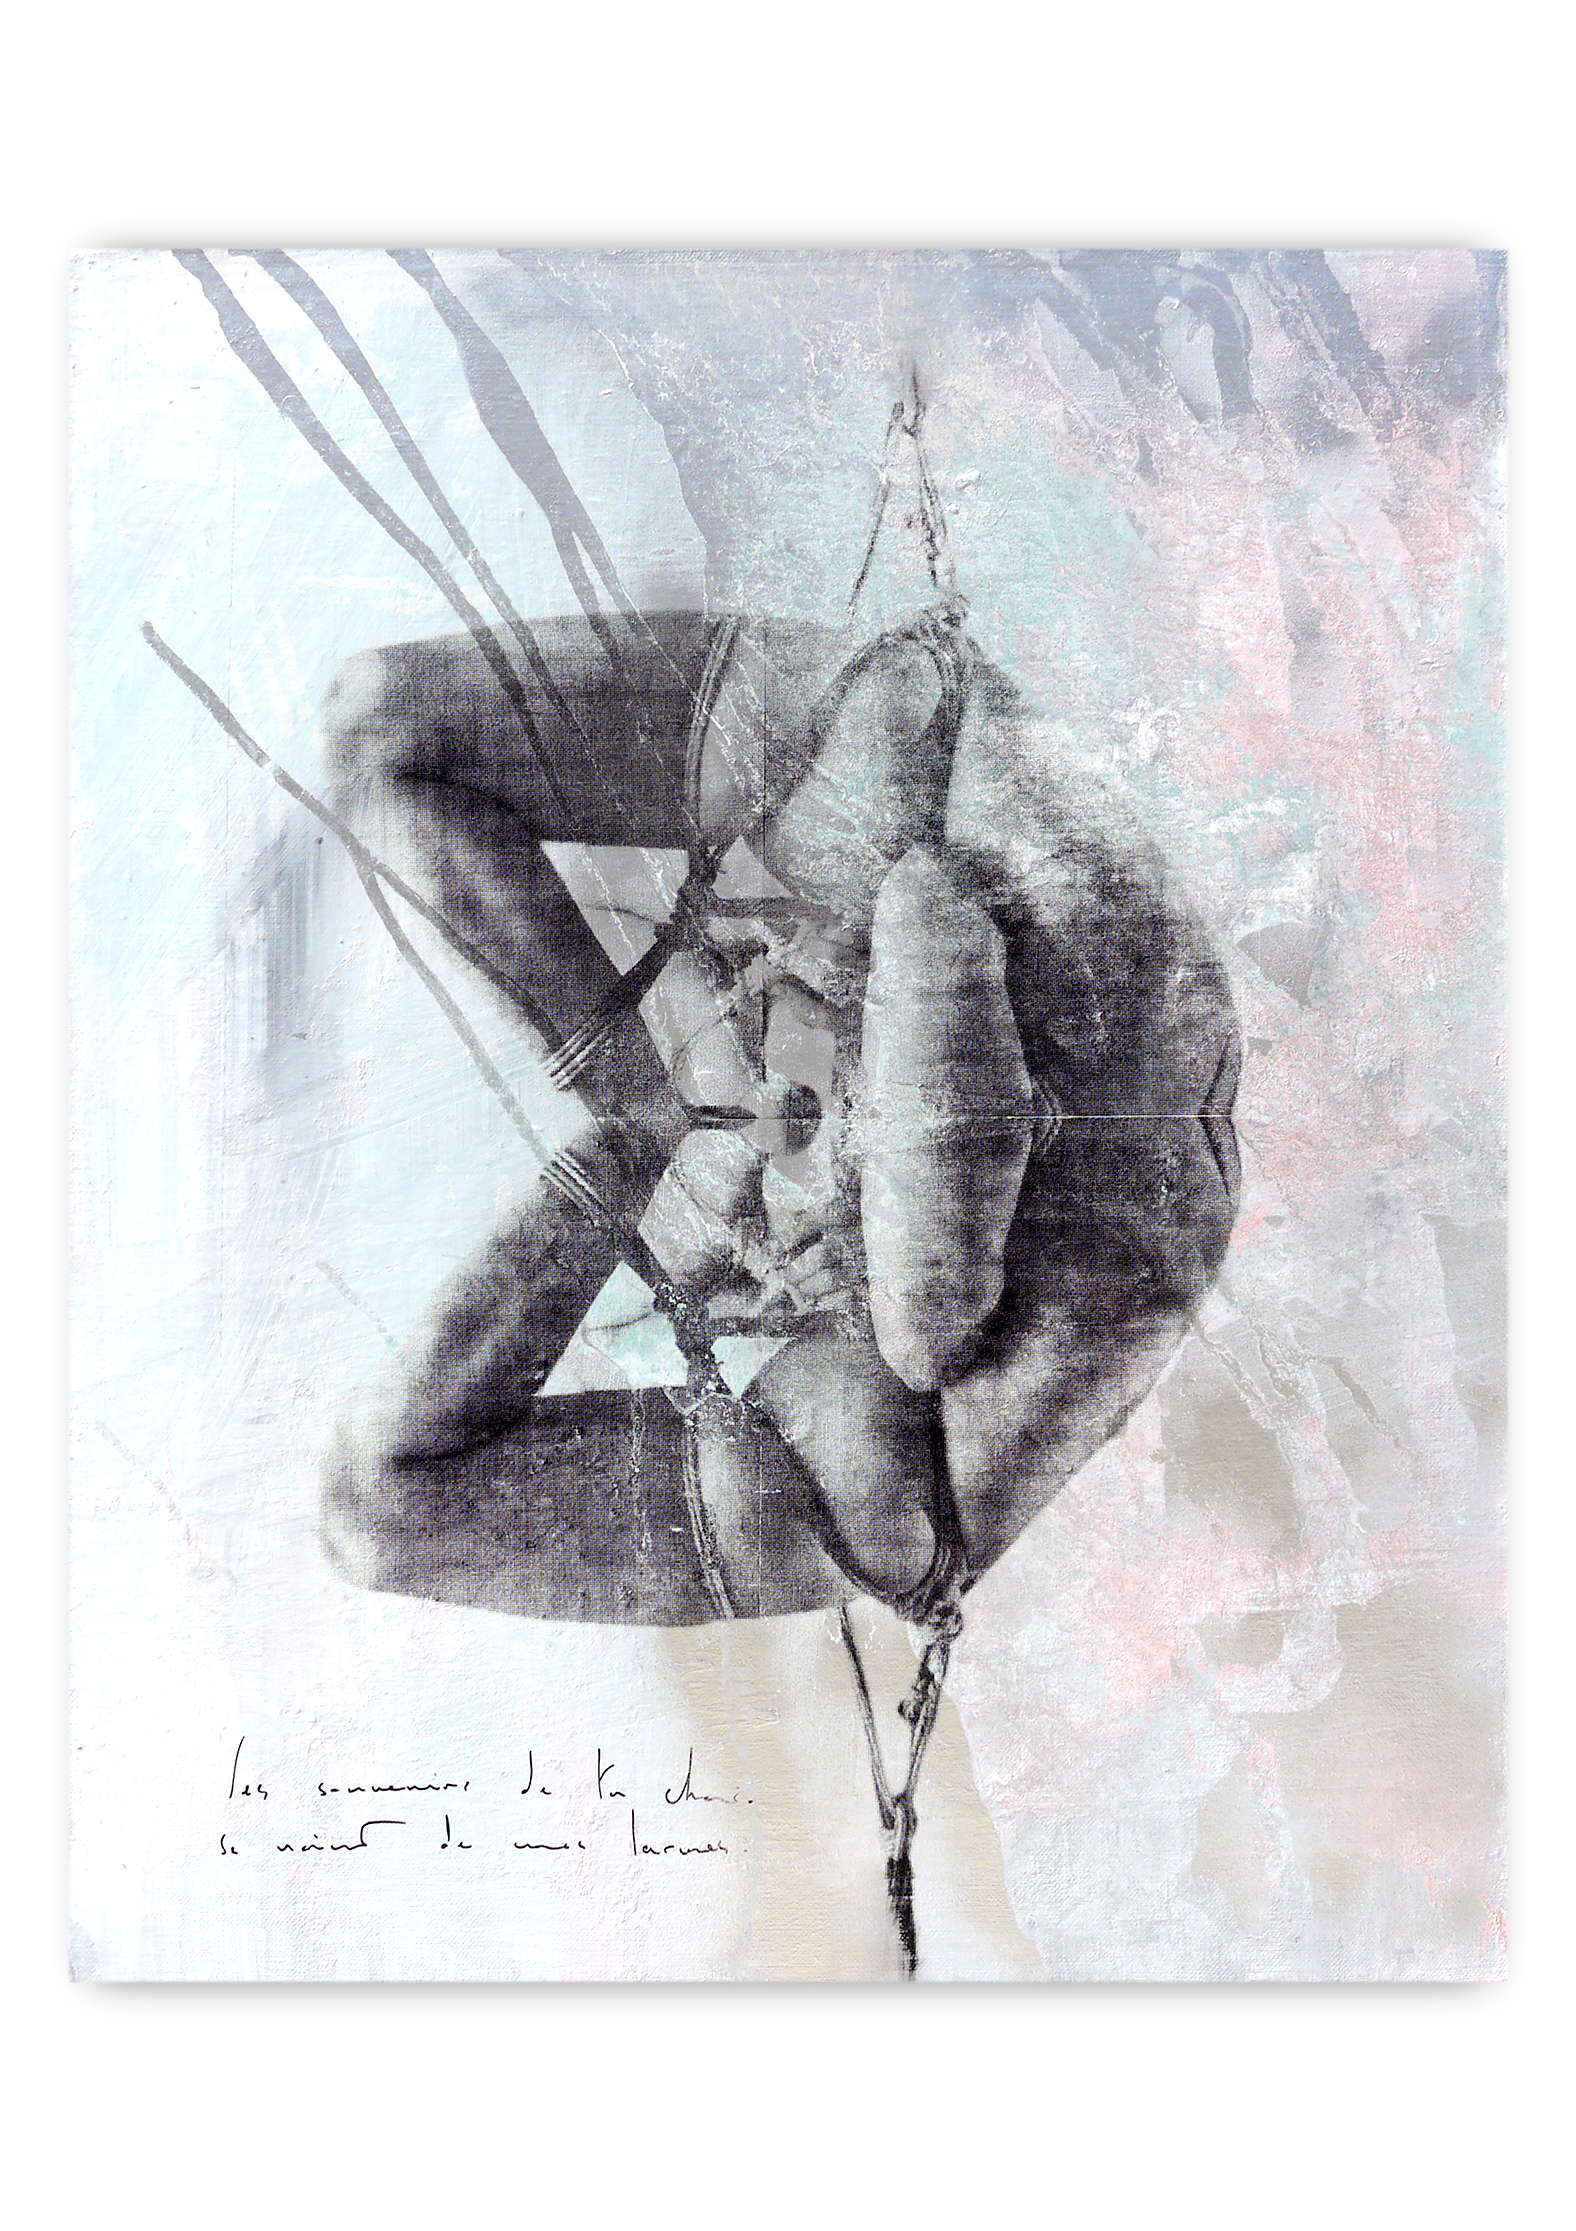 p l a y g r o u n d | Acrylic, Aerosol spray and Silkscreen ink on canvas . 26 x 21 inches · 65 x 54 cm . MMXX